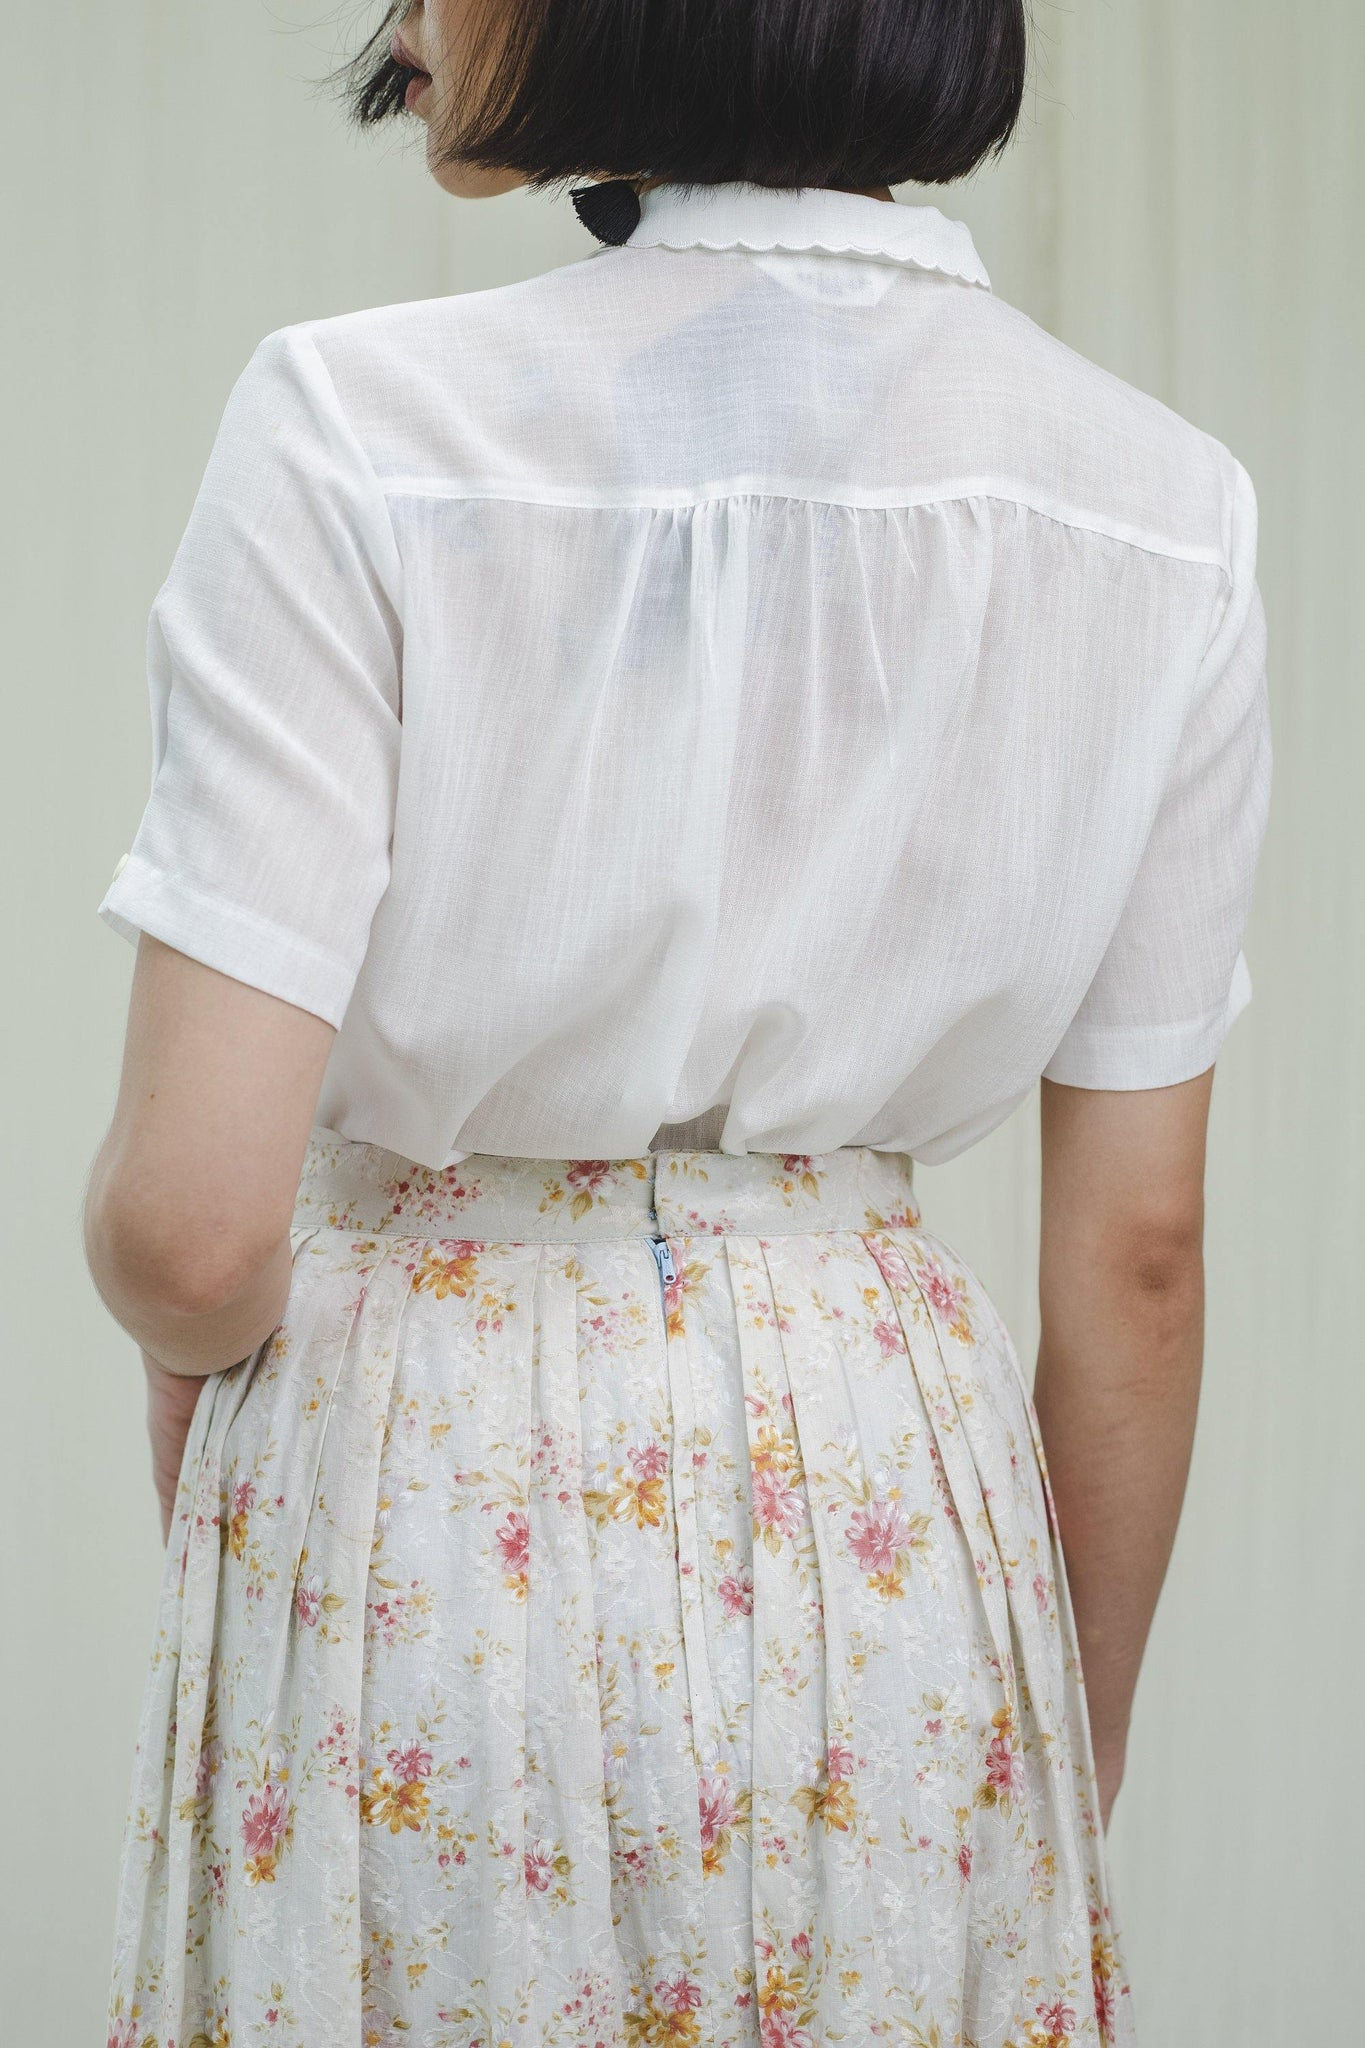 Skirt l vintage 80's cotton skirt - Sugar & Cream Vintage